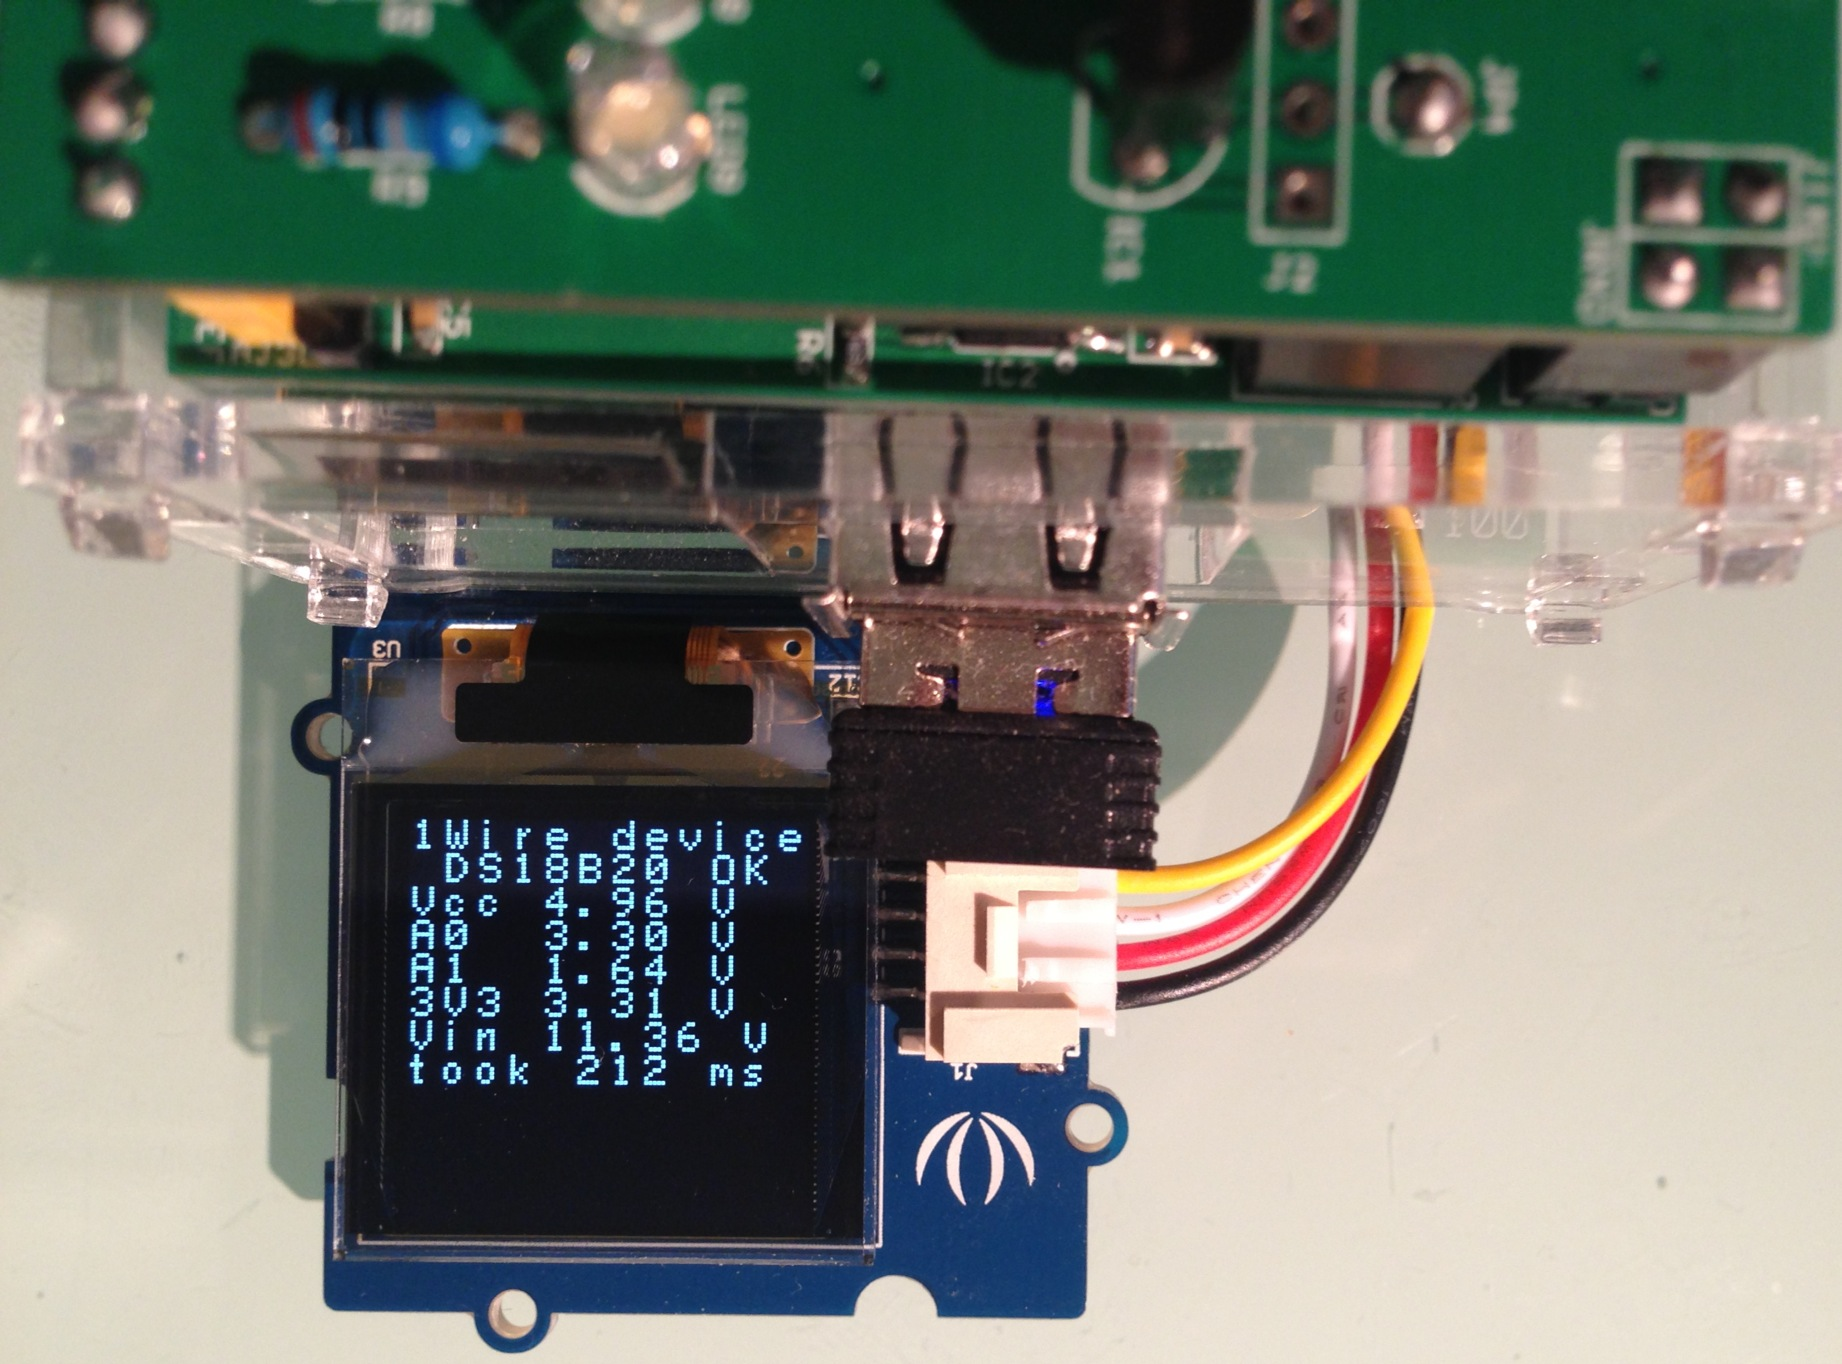 Adafruit Ssd1306 Oled Display Driver For Raspberry Pi Charless Blog Spi Using Wiringpi Arduipi Test Board With Grove